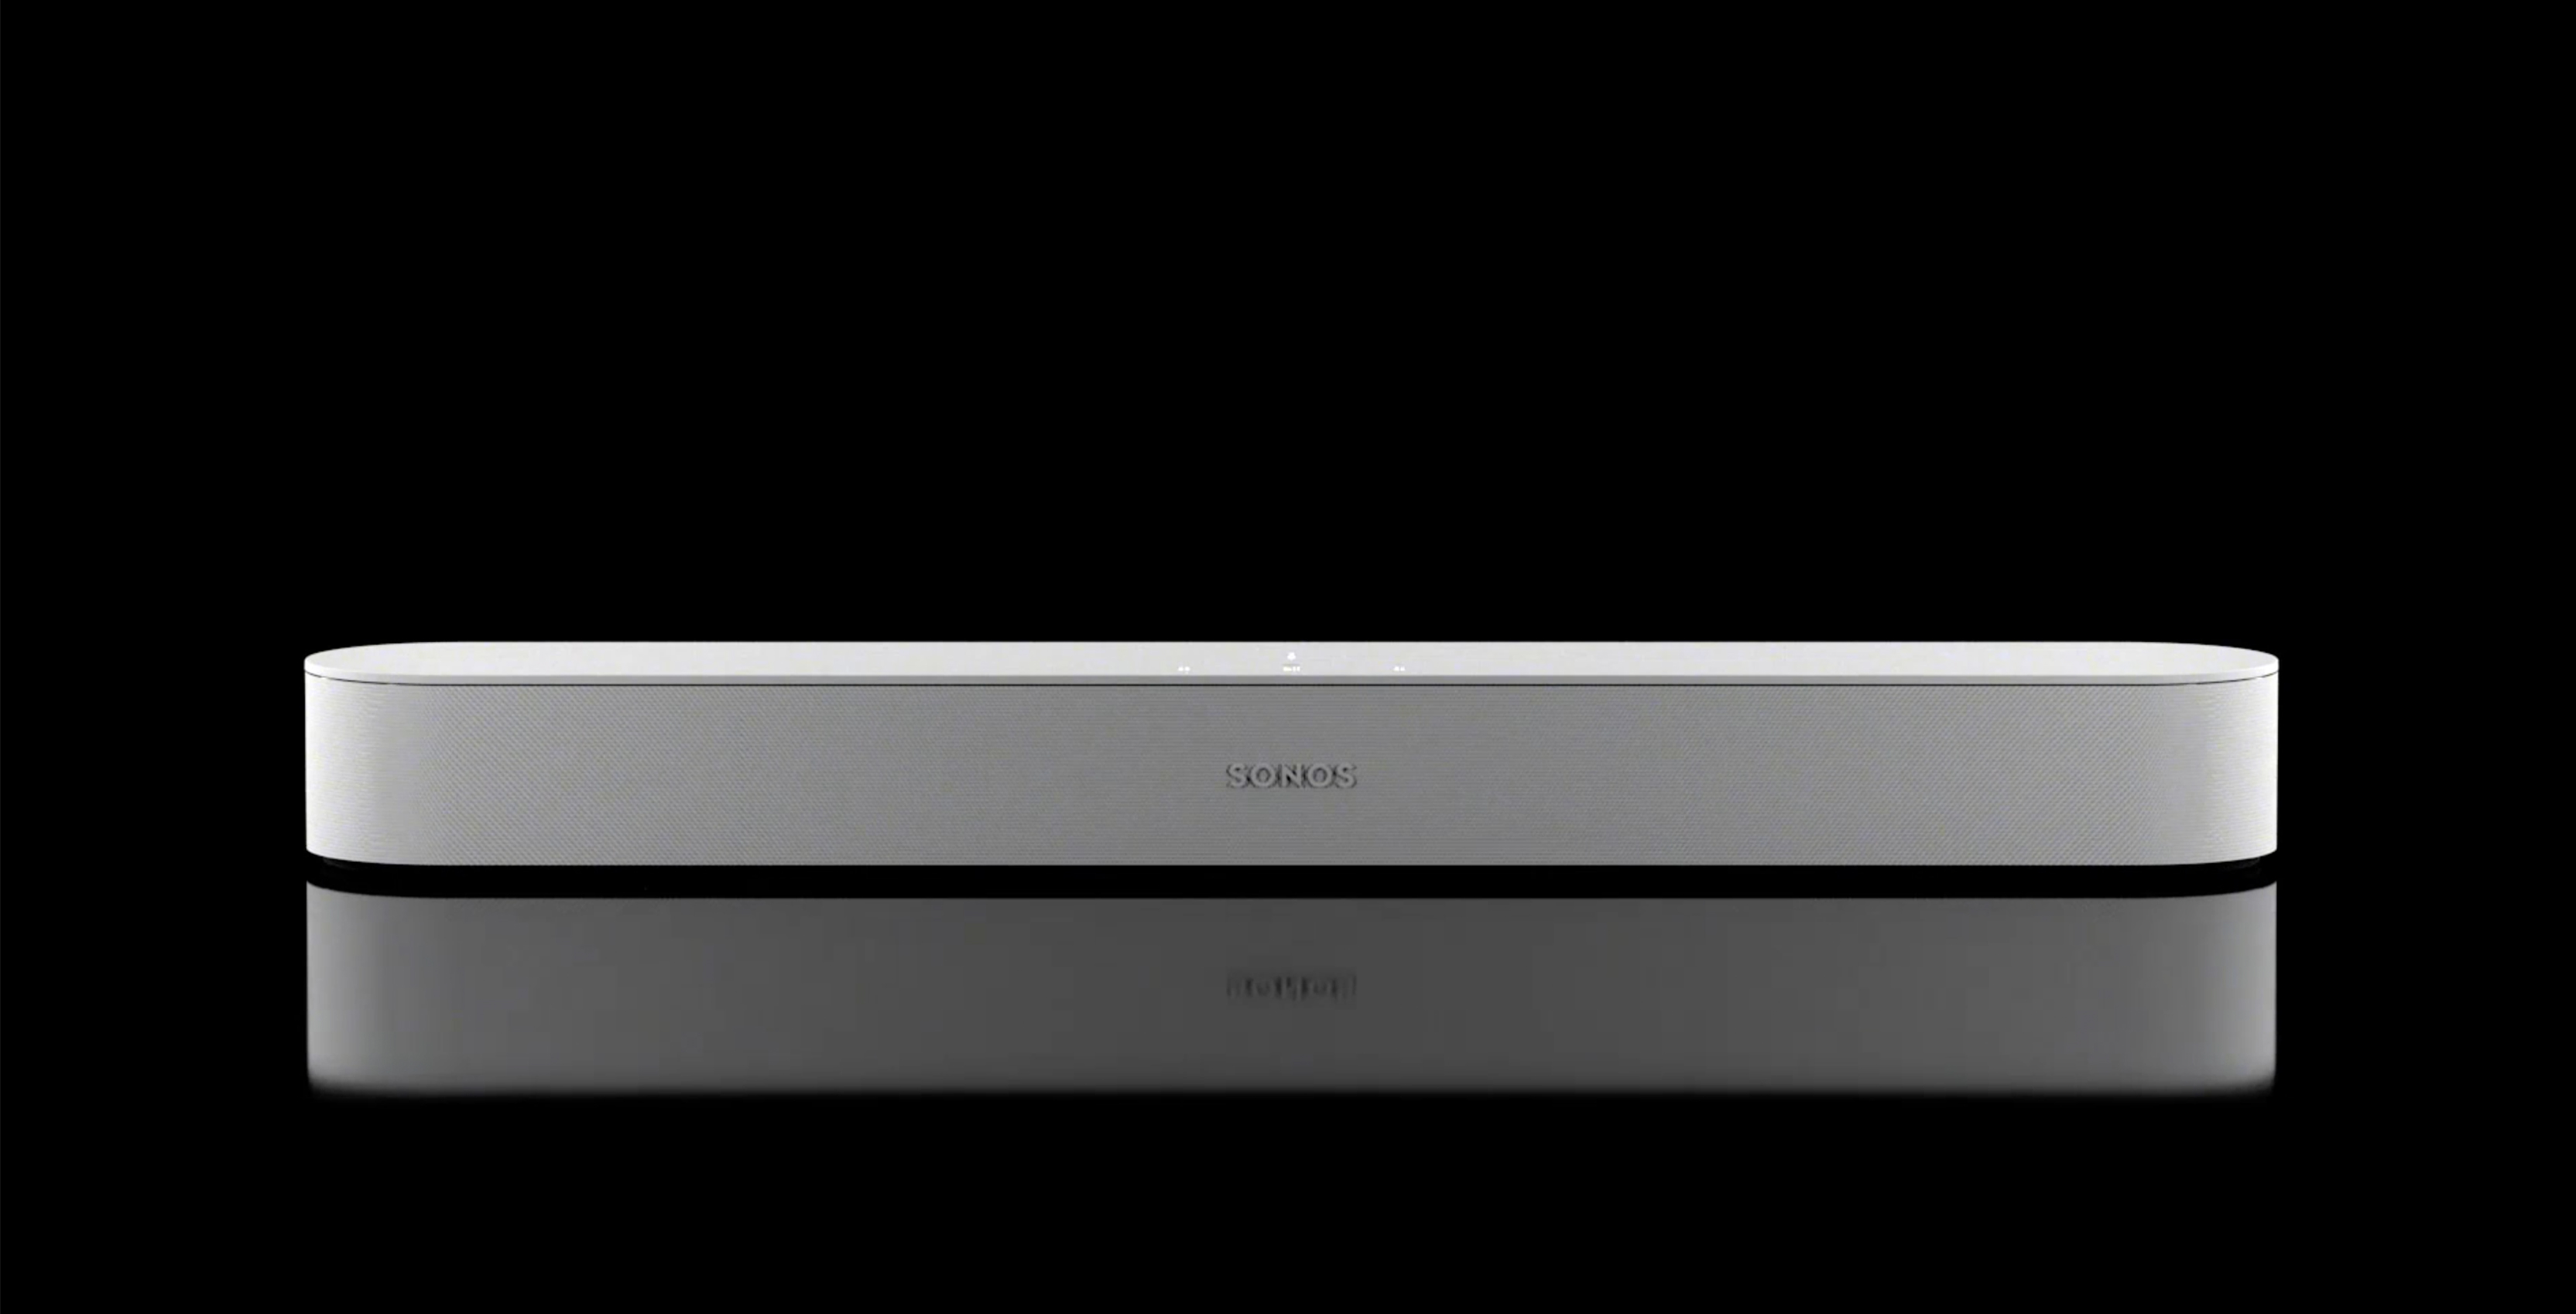 Sonos Beam is the new compact soundbar with HDMI and voice control